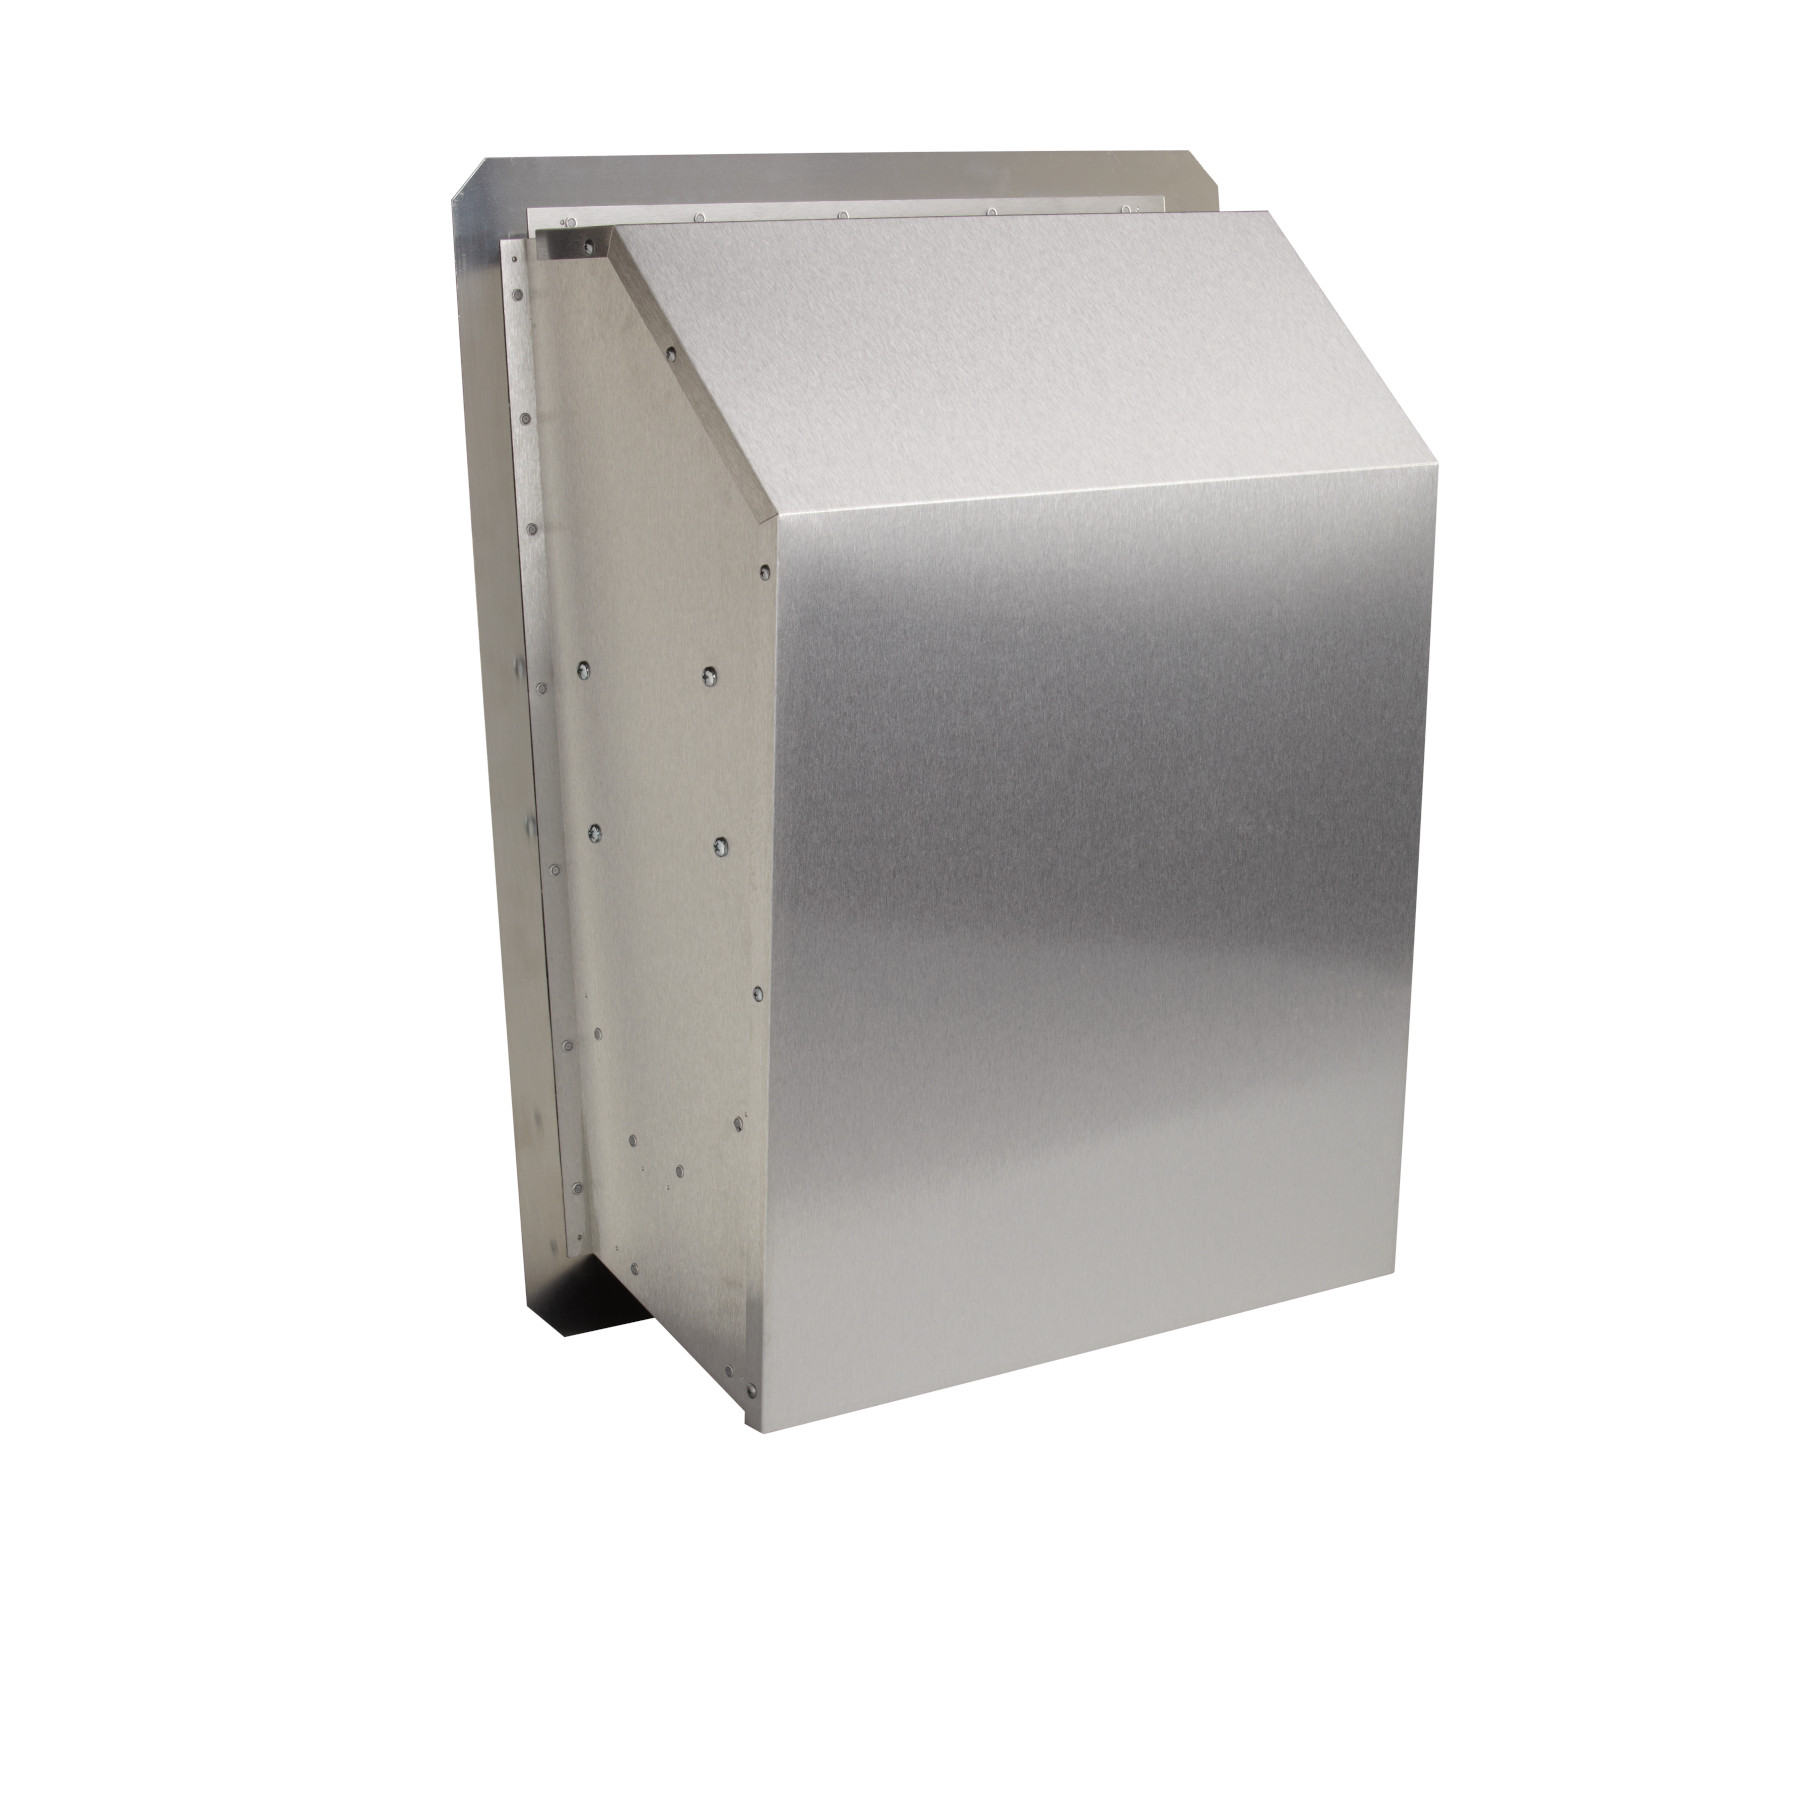 1200 CFM External Blower, for use with Select Broan® Range Hoods